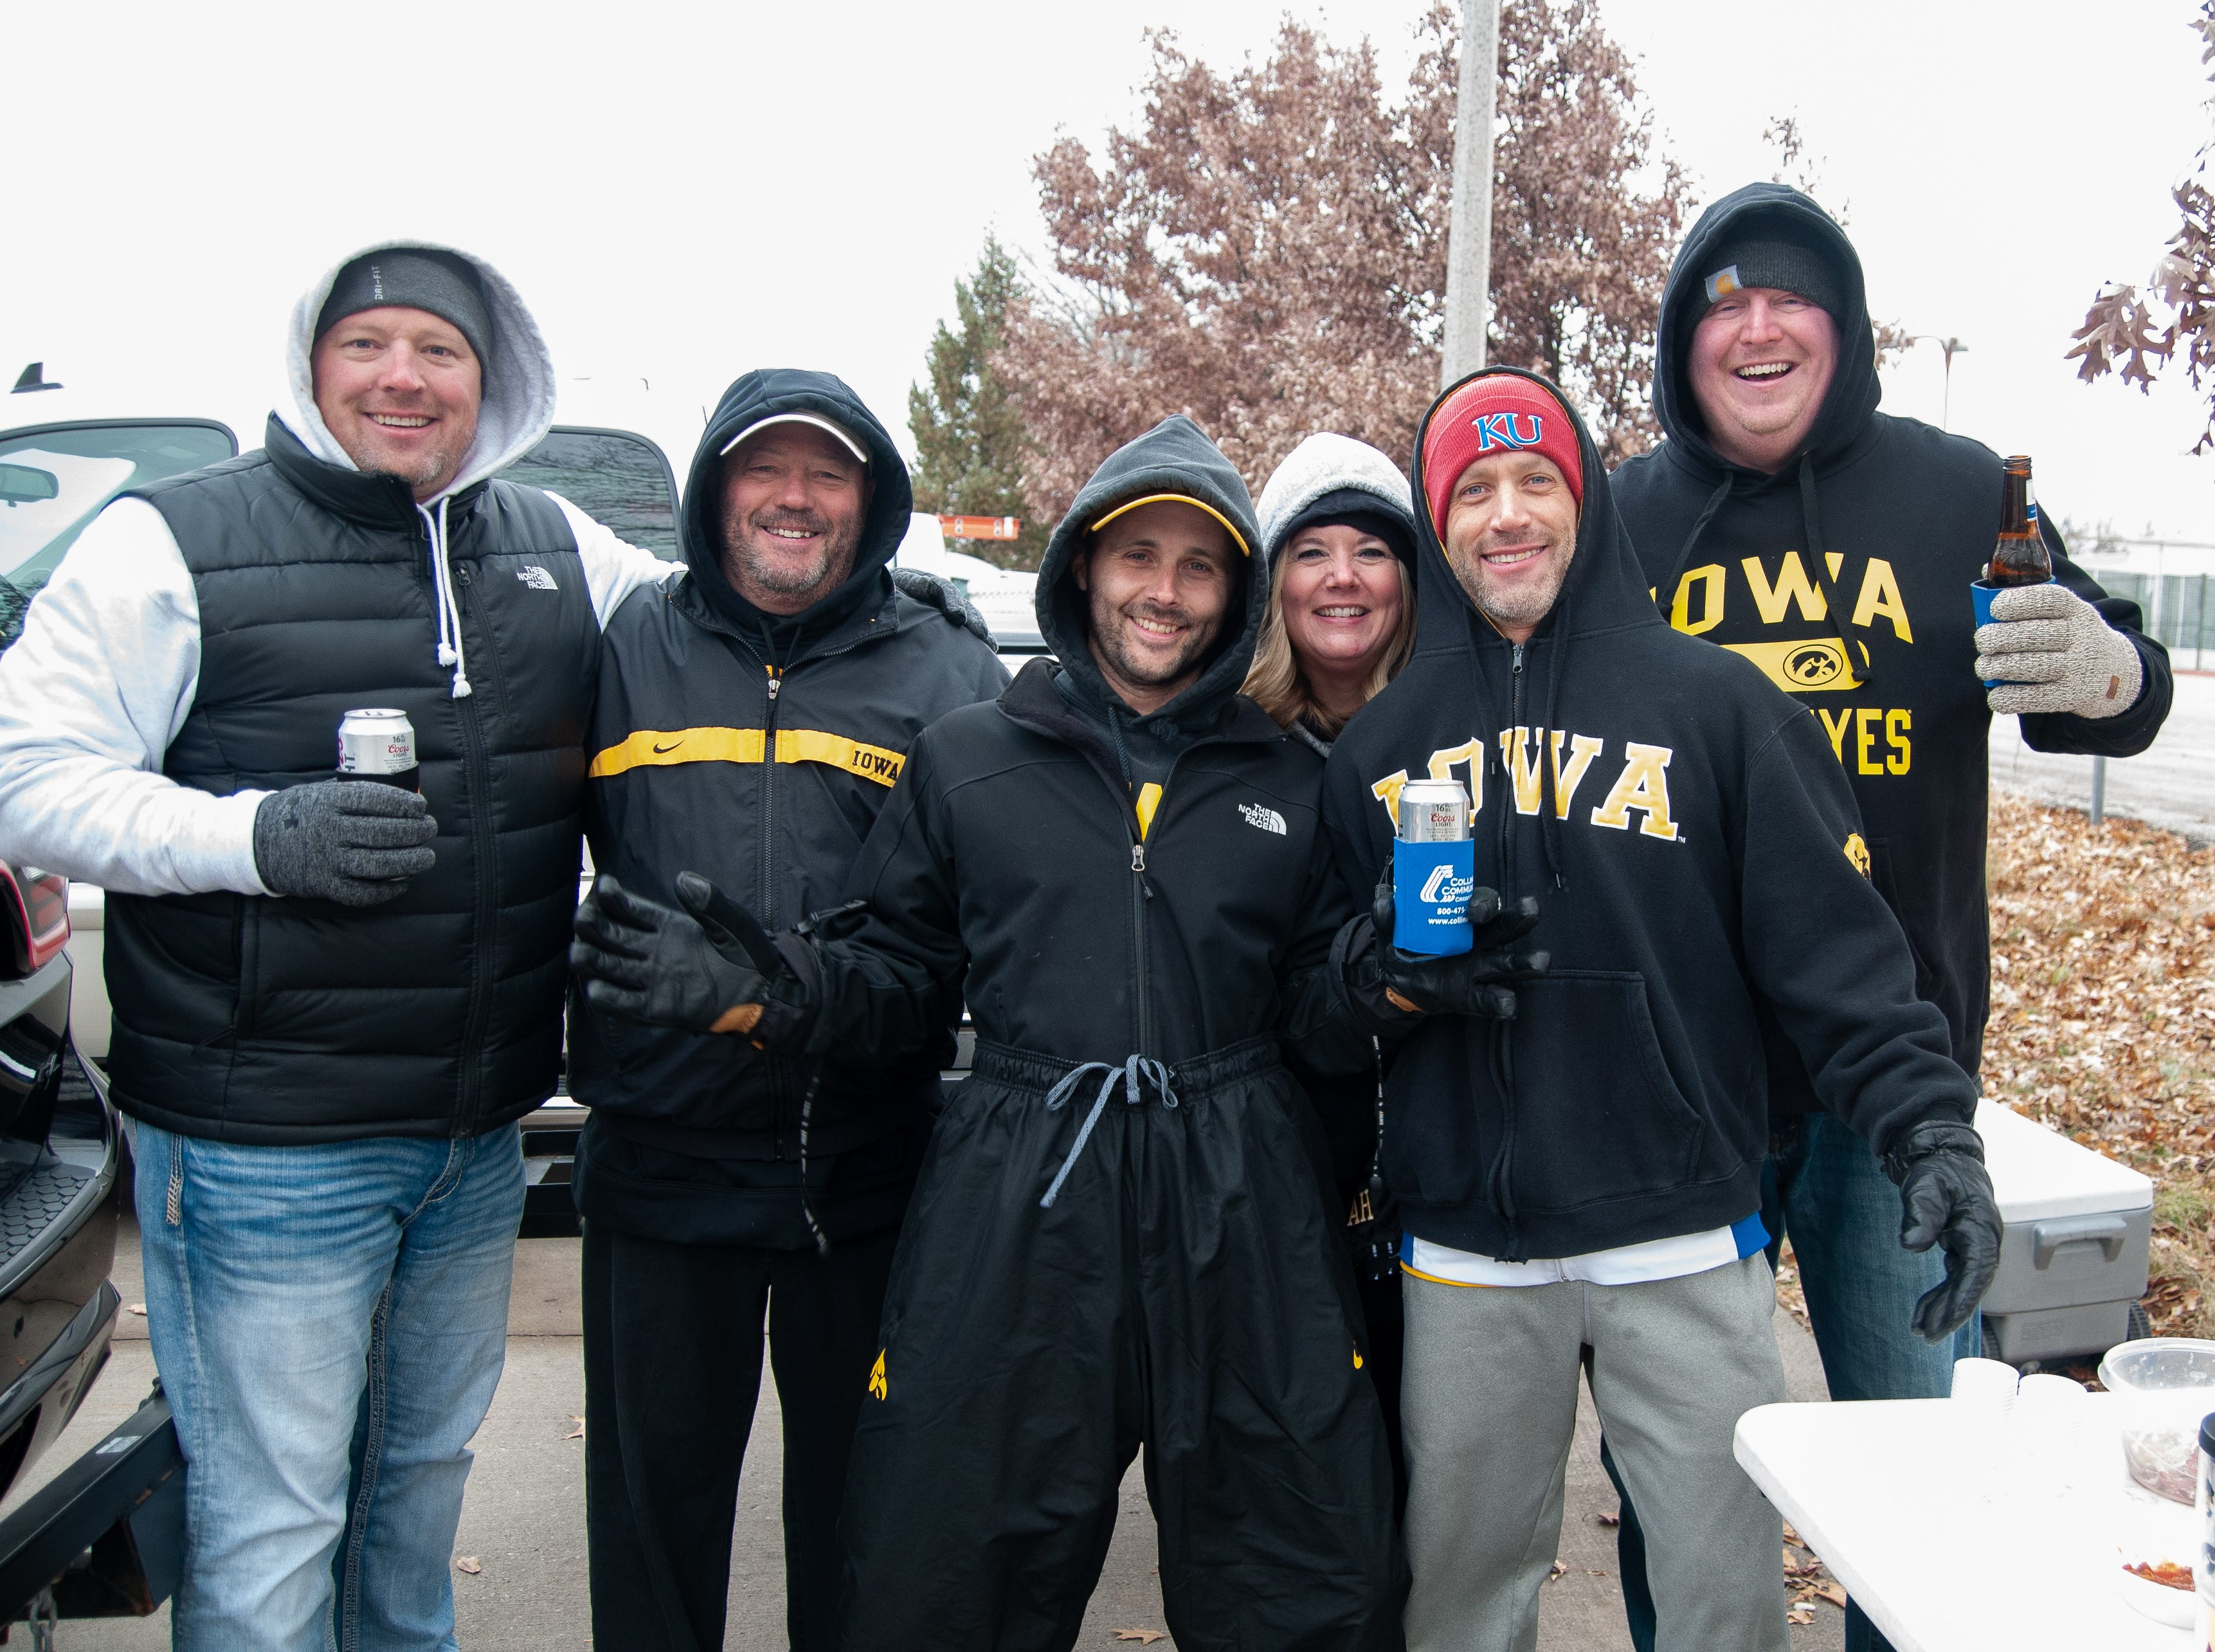 The Morrissey and Davis Tailgate, of Norwalk, Friday, Nov. 23, 2018, while tailgating before the Iowa game against Nebraska in Iowa City.